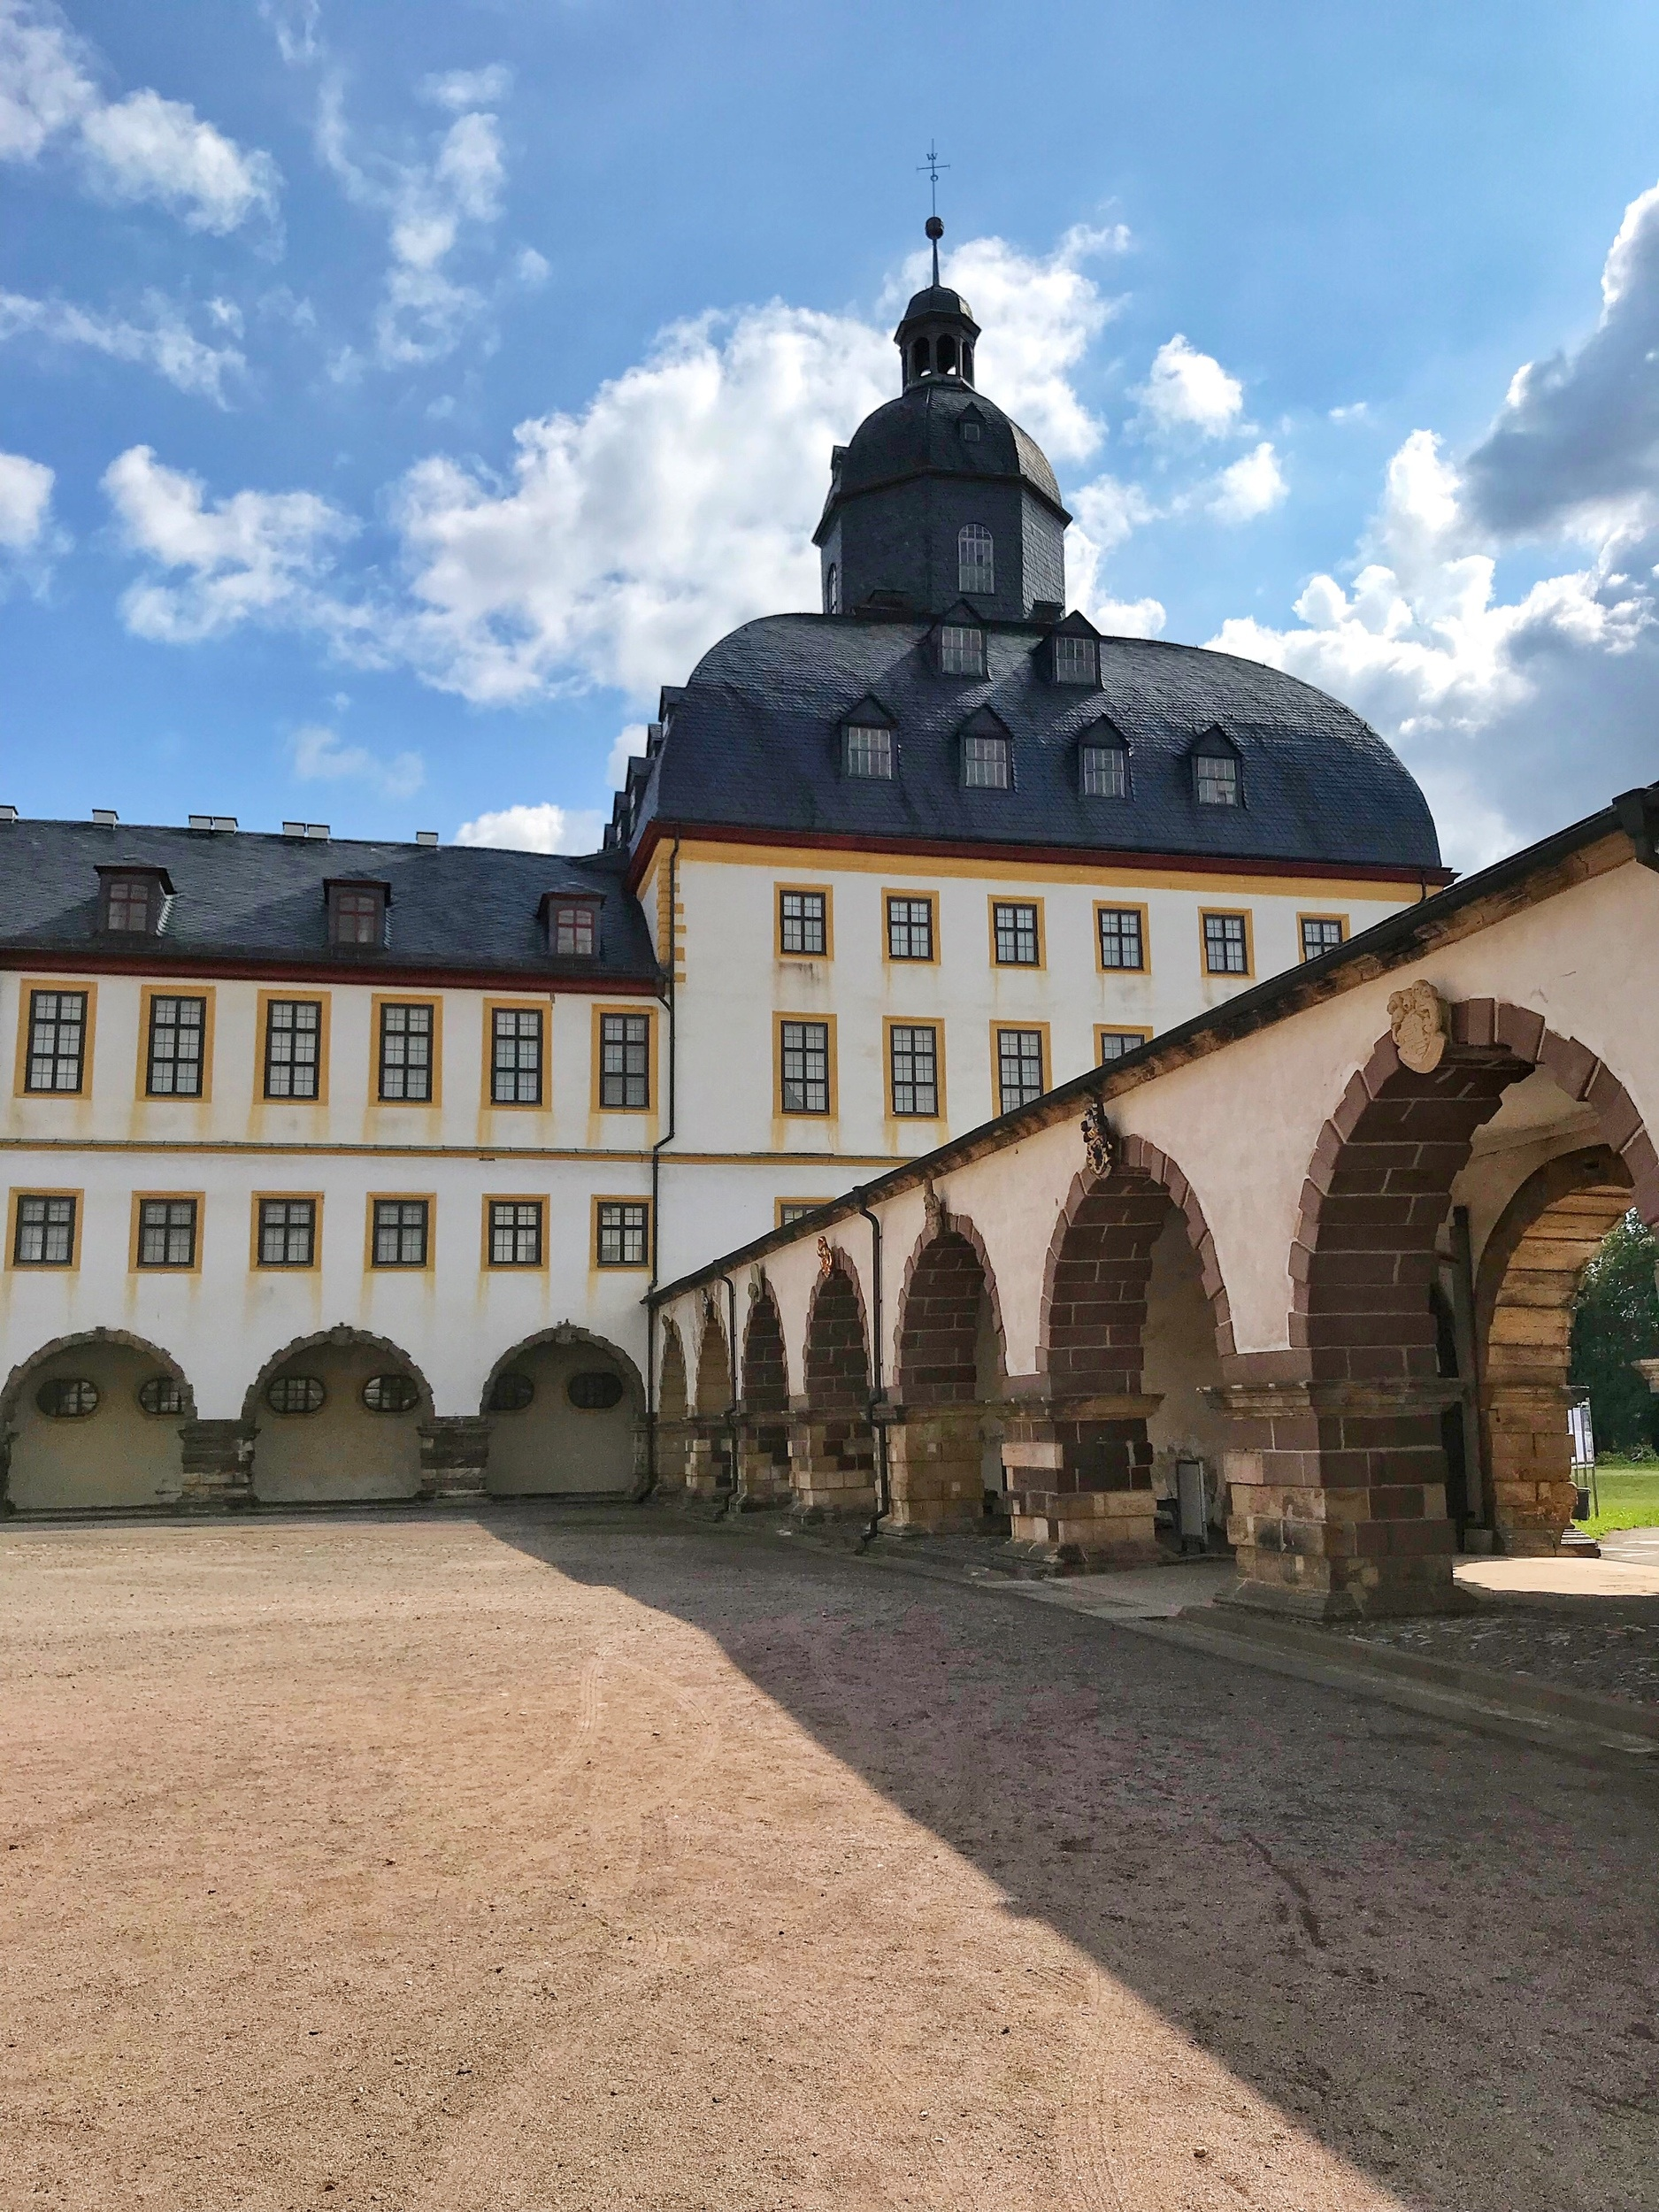 Schloss Friedenstein in Gotha, Germany